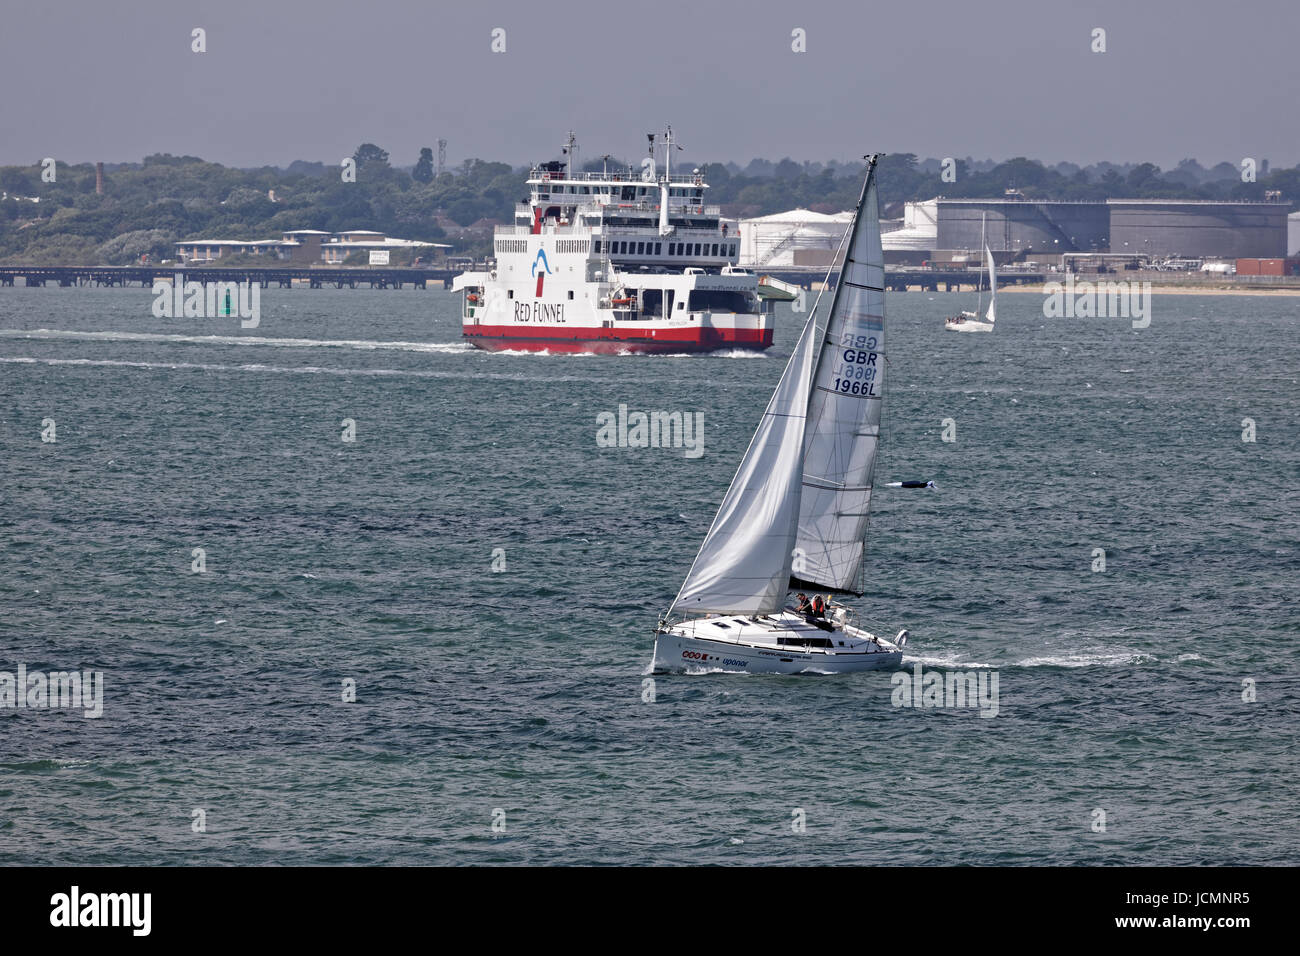 Farview Sailing Yacht Charter Company's Oceanis 37 Yacht and crew in the Solent - Stock Image